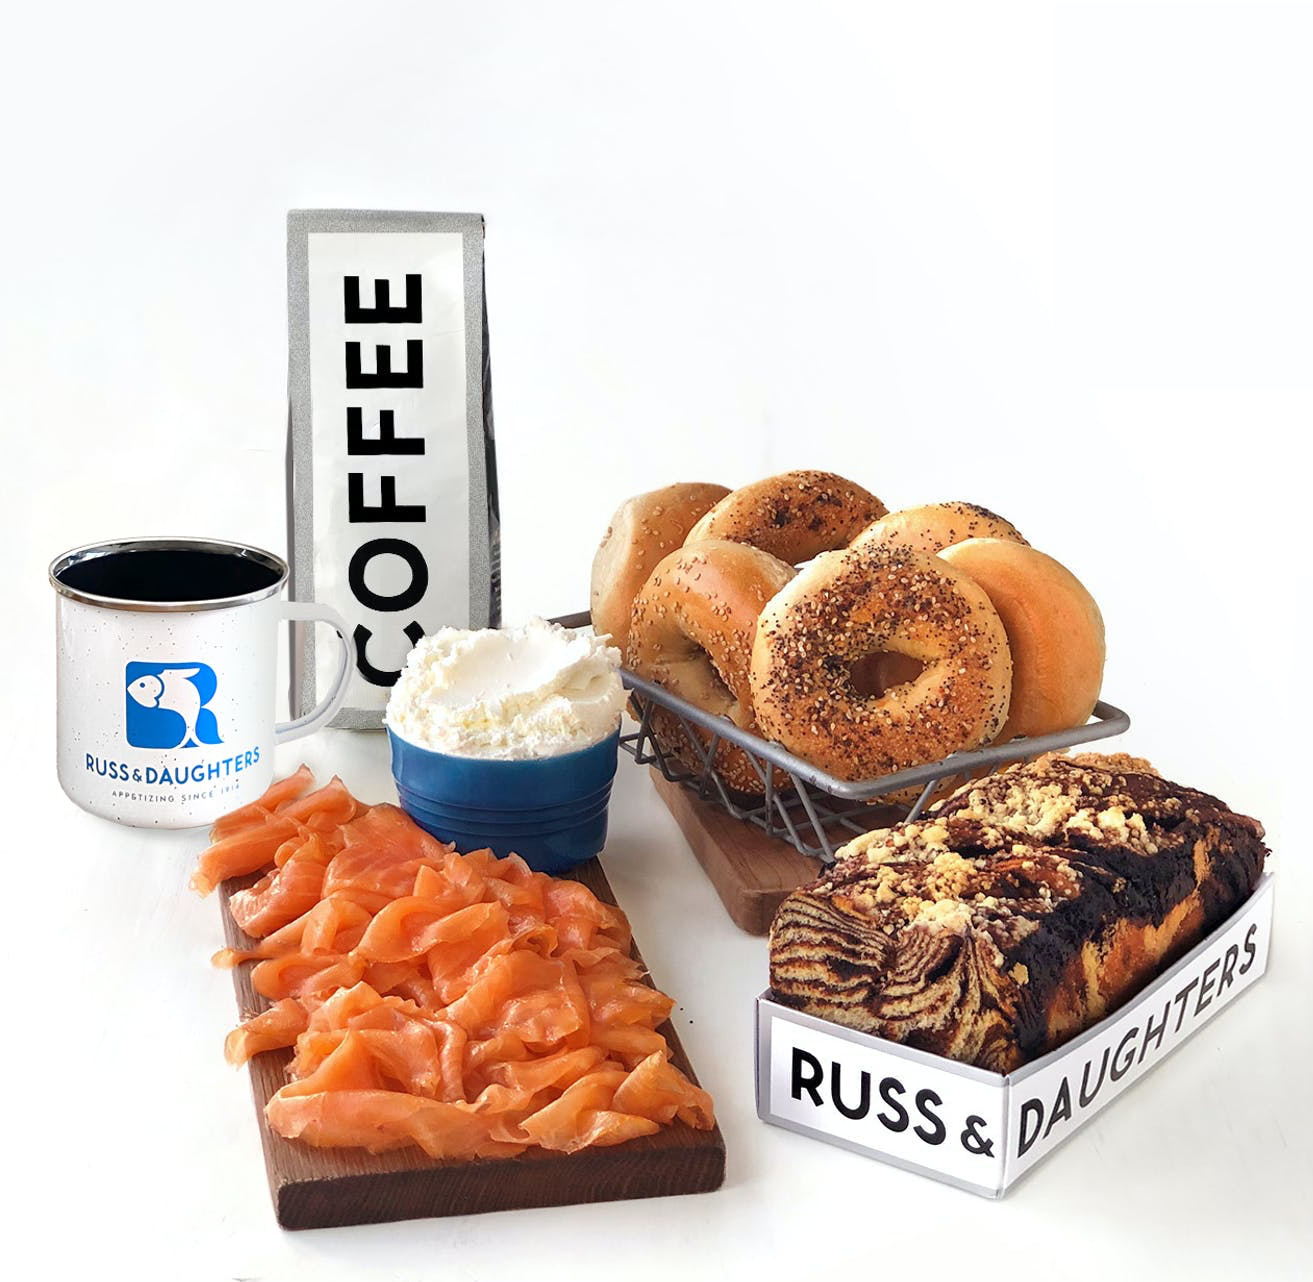 Favorite NYC food gifts: Brunch basket from Russ & Daughters